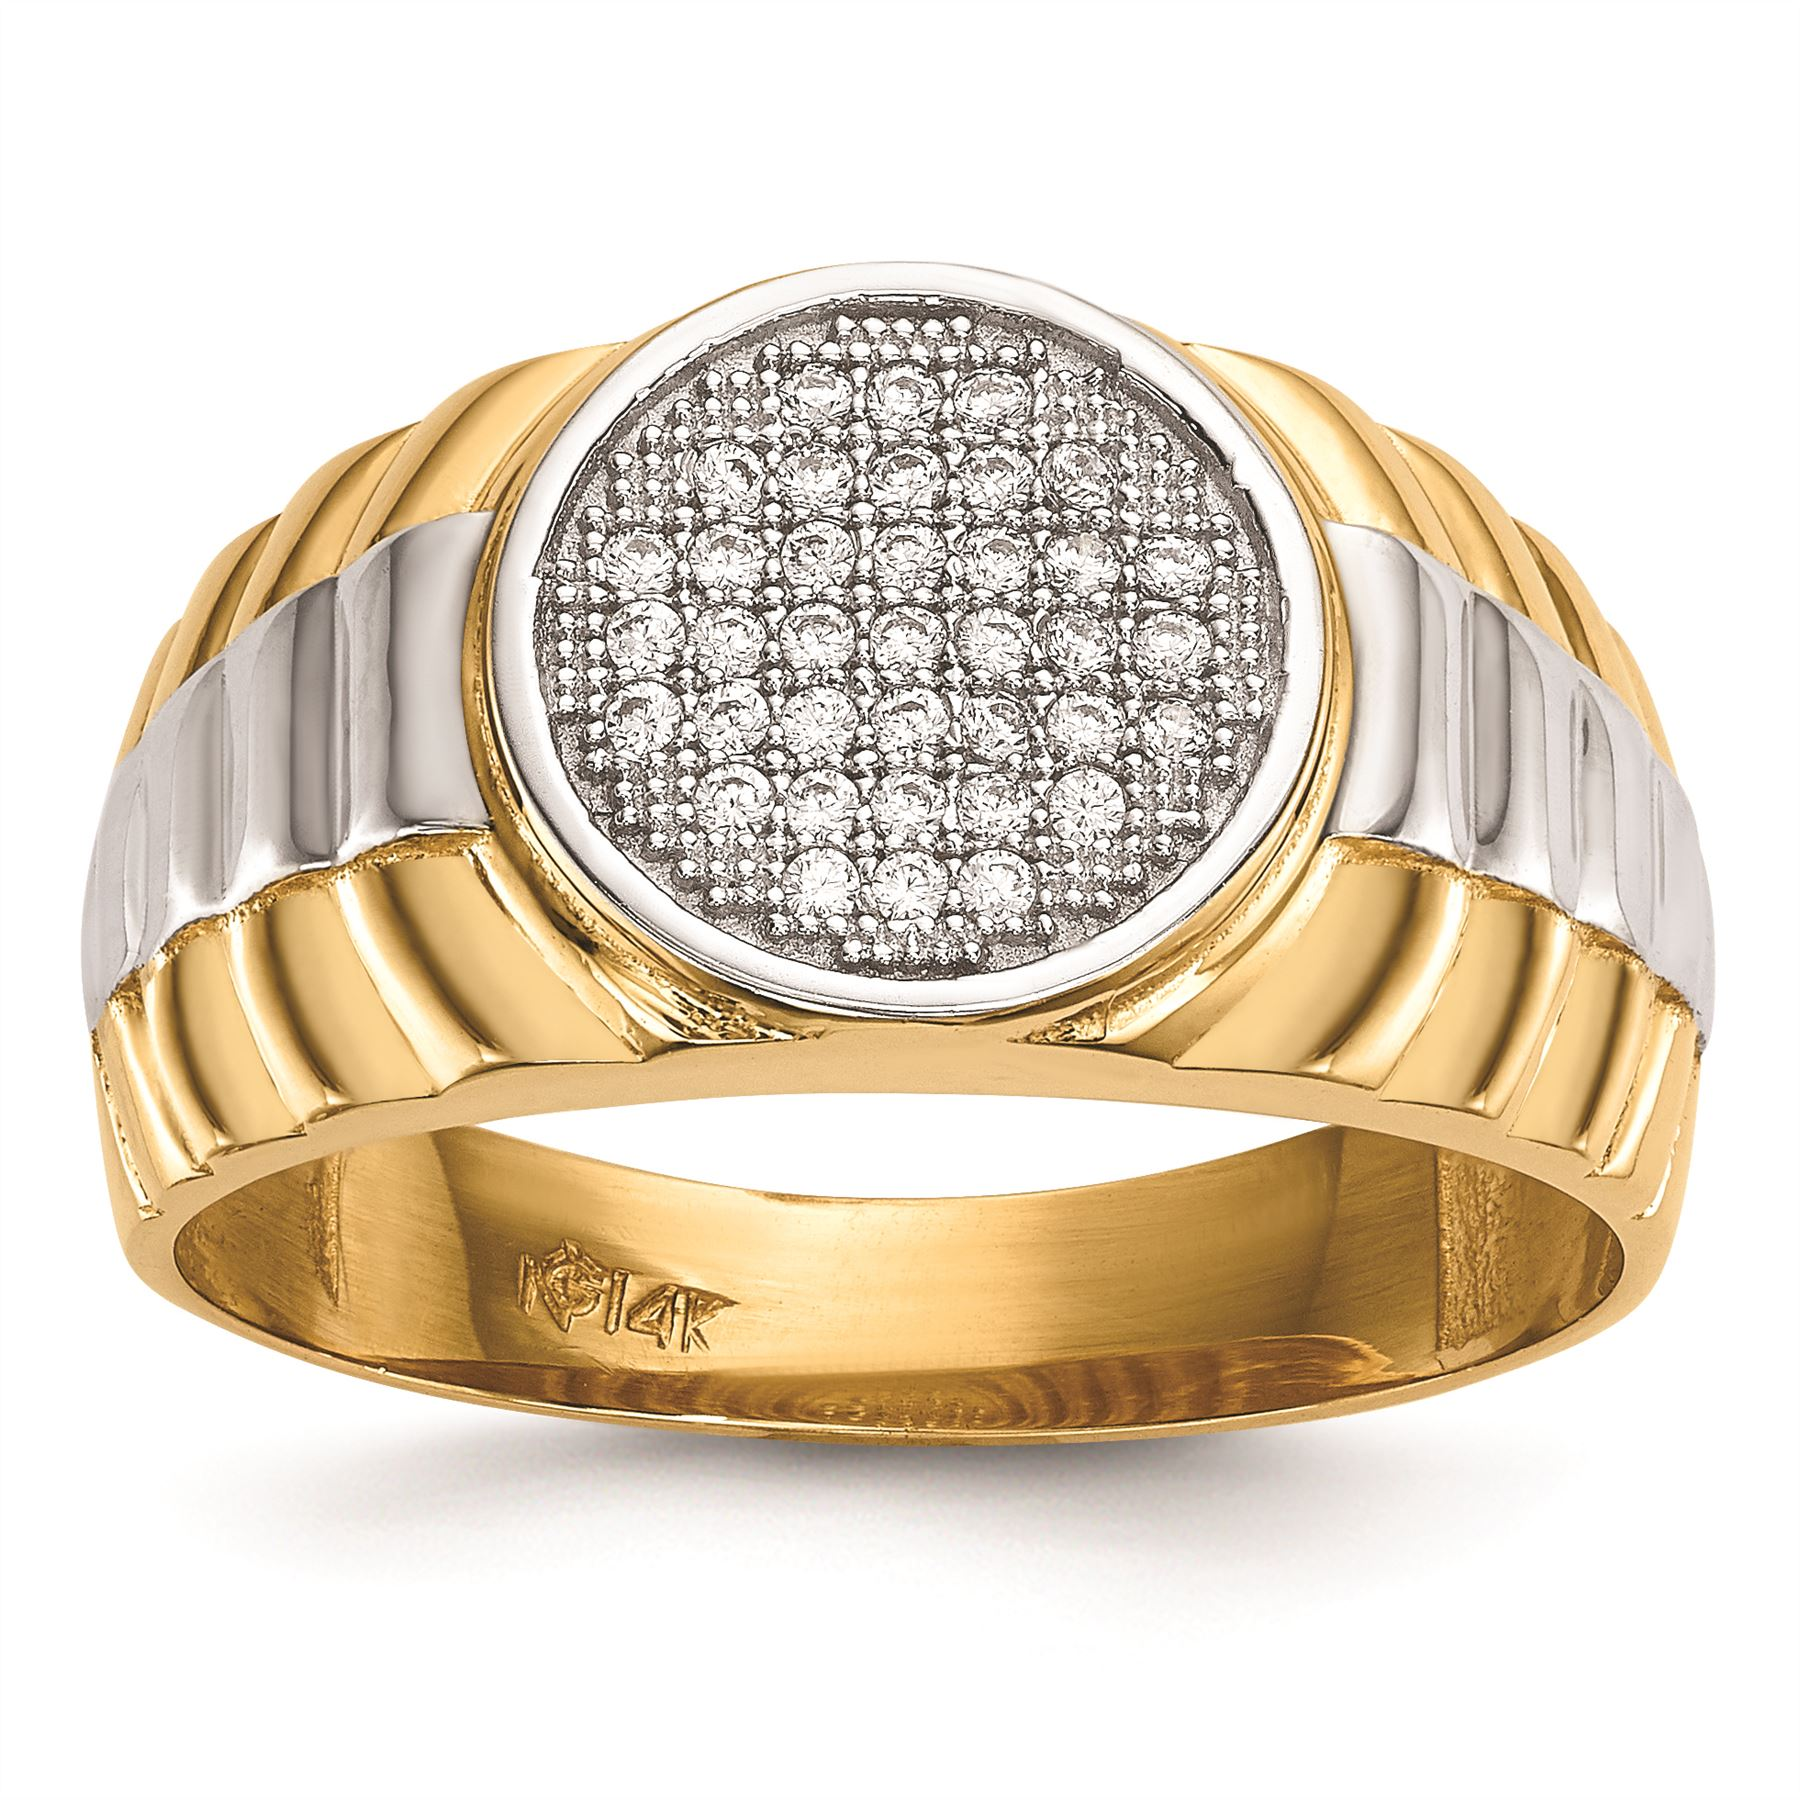 14K White And Yellow gold 12.5 MM Men's Micro Pave CZ Round Ring, Size 10